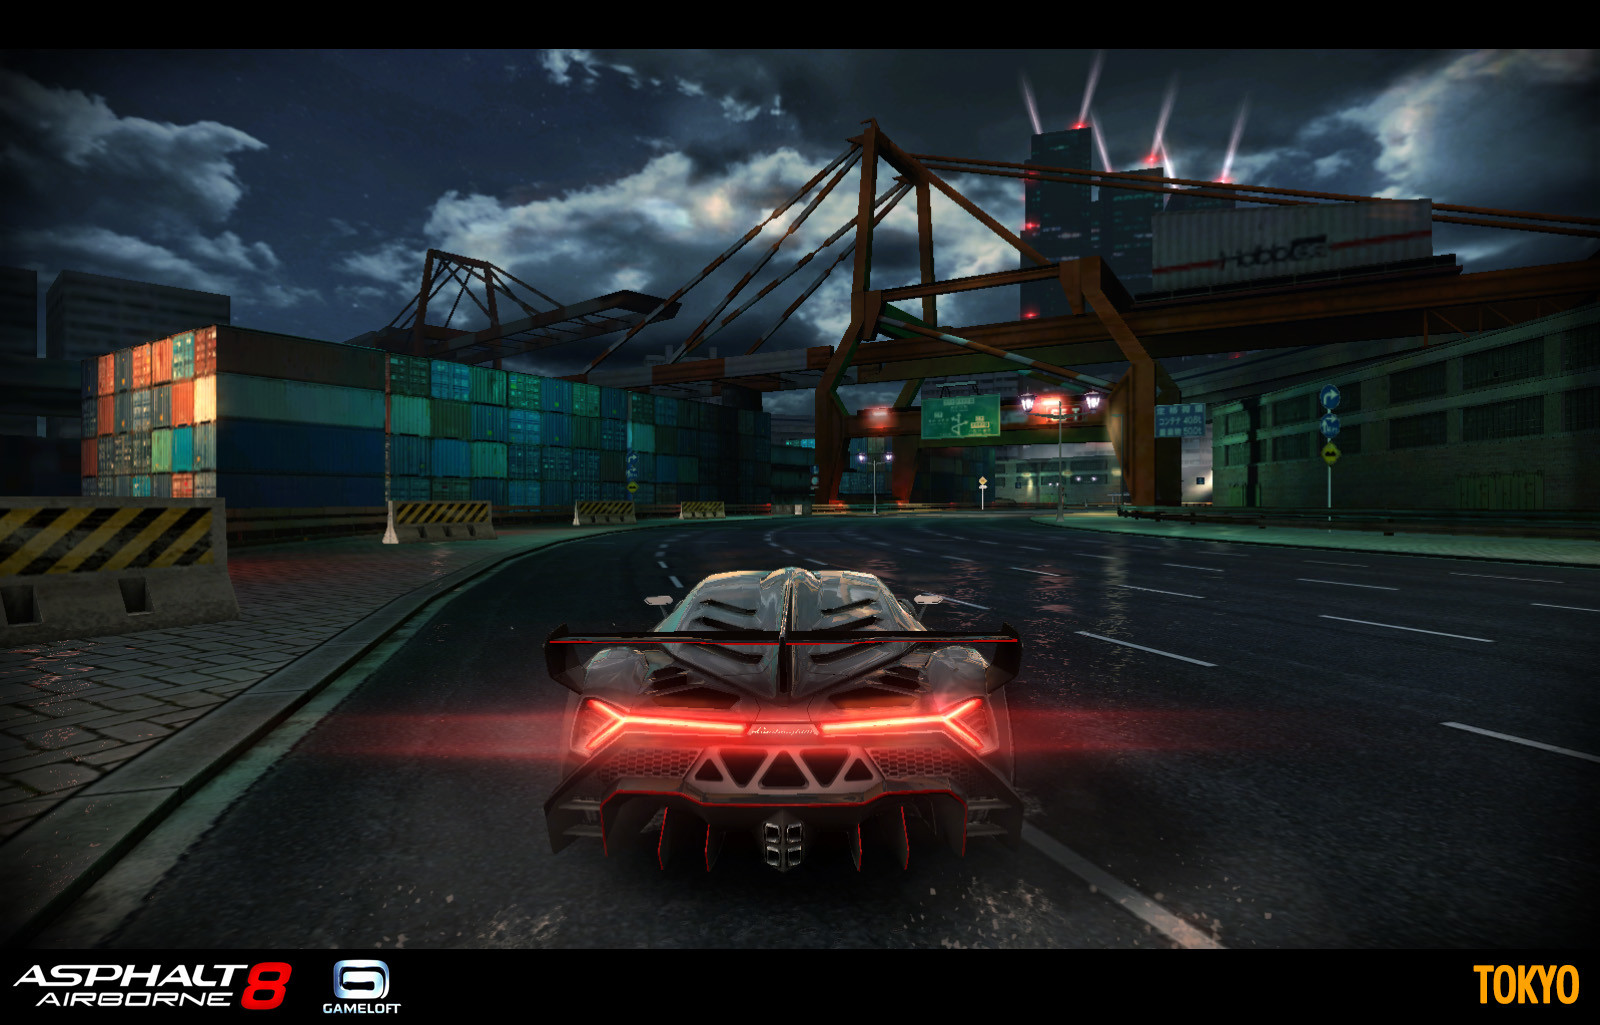 How to copy the Asphalt 8 game data from an